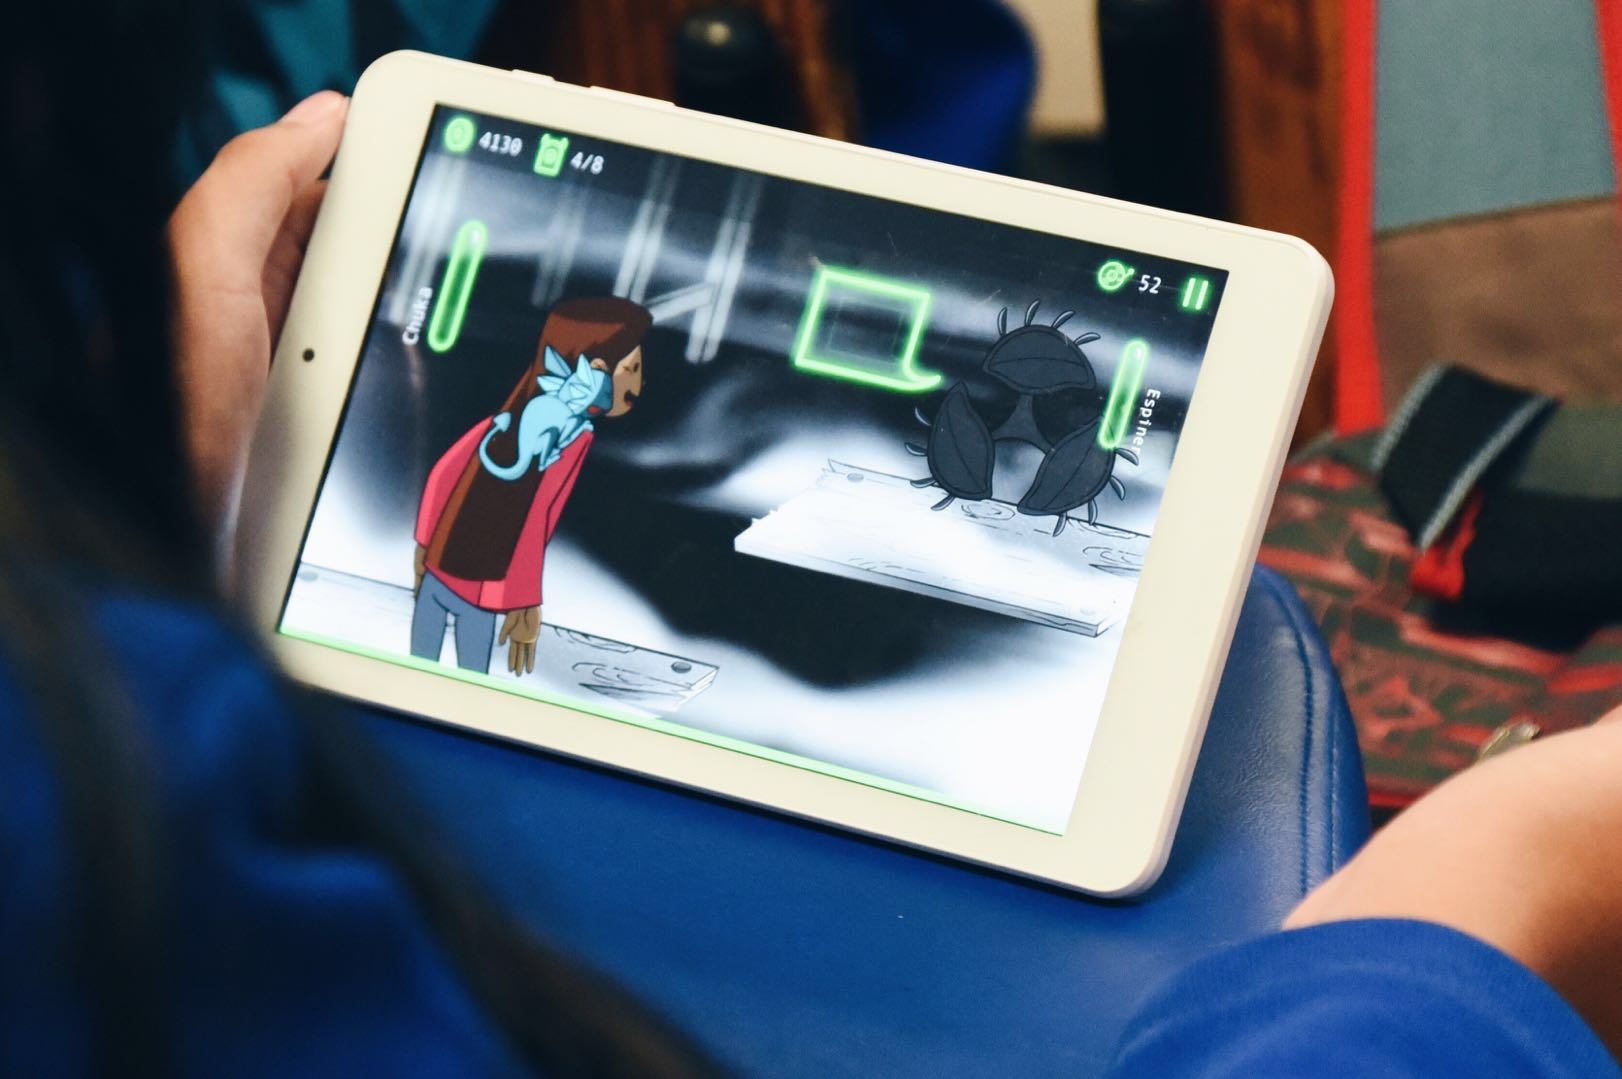 Chuka, the unique video game empowering girls against gender violence